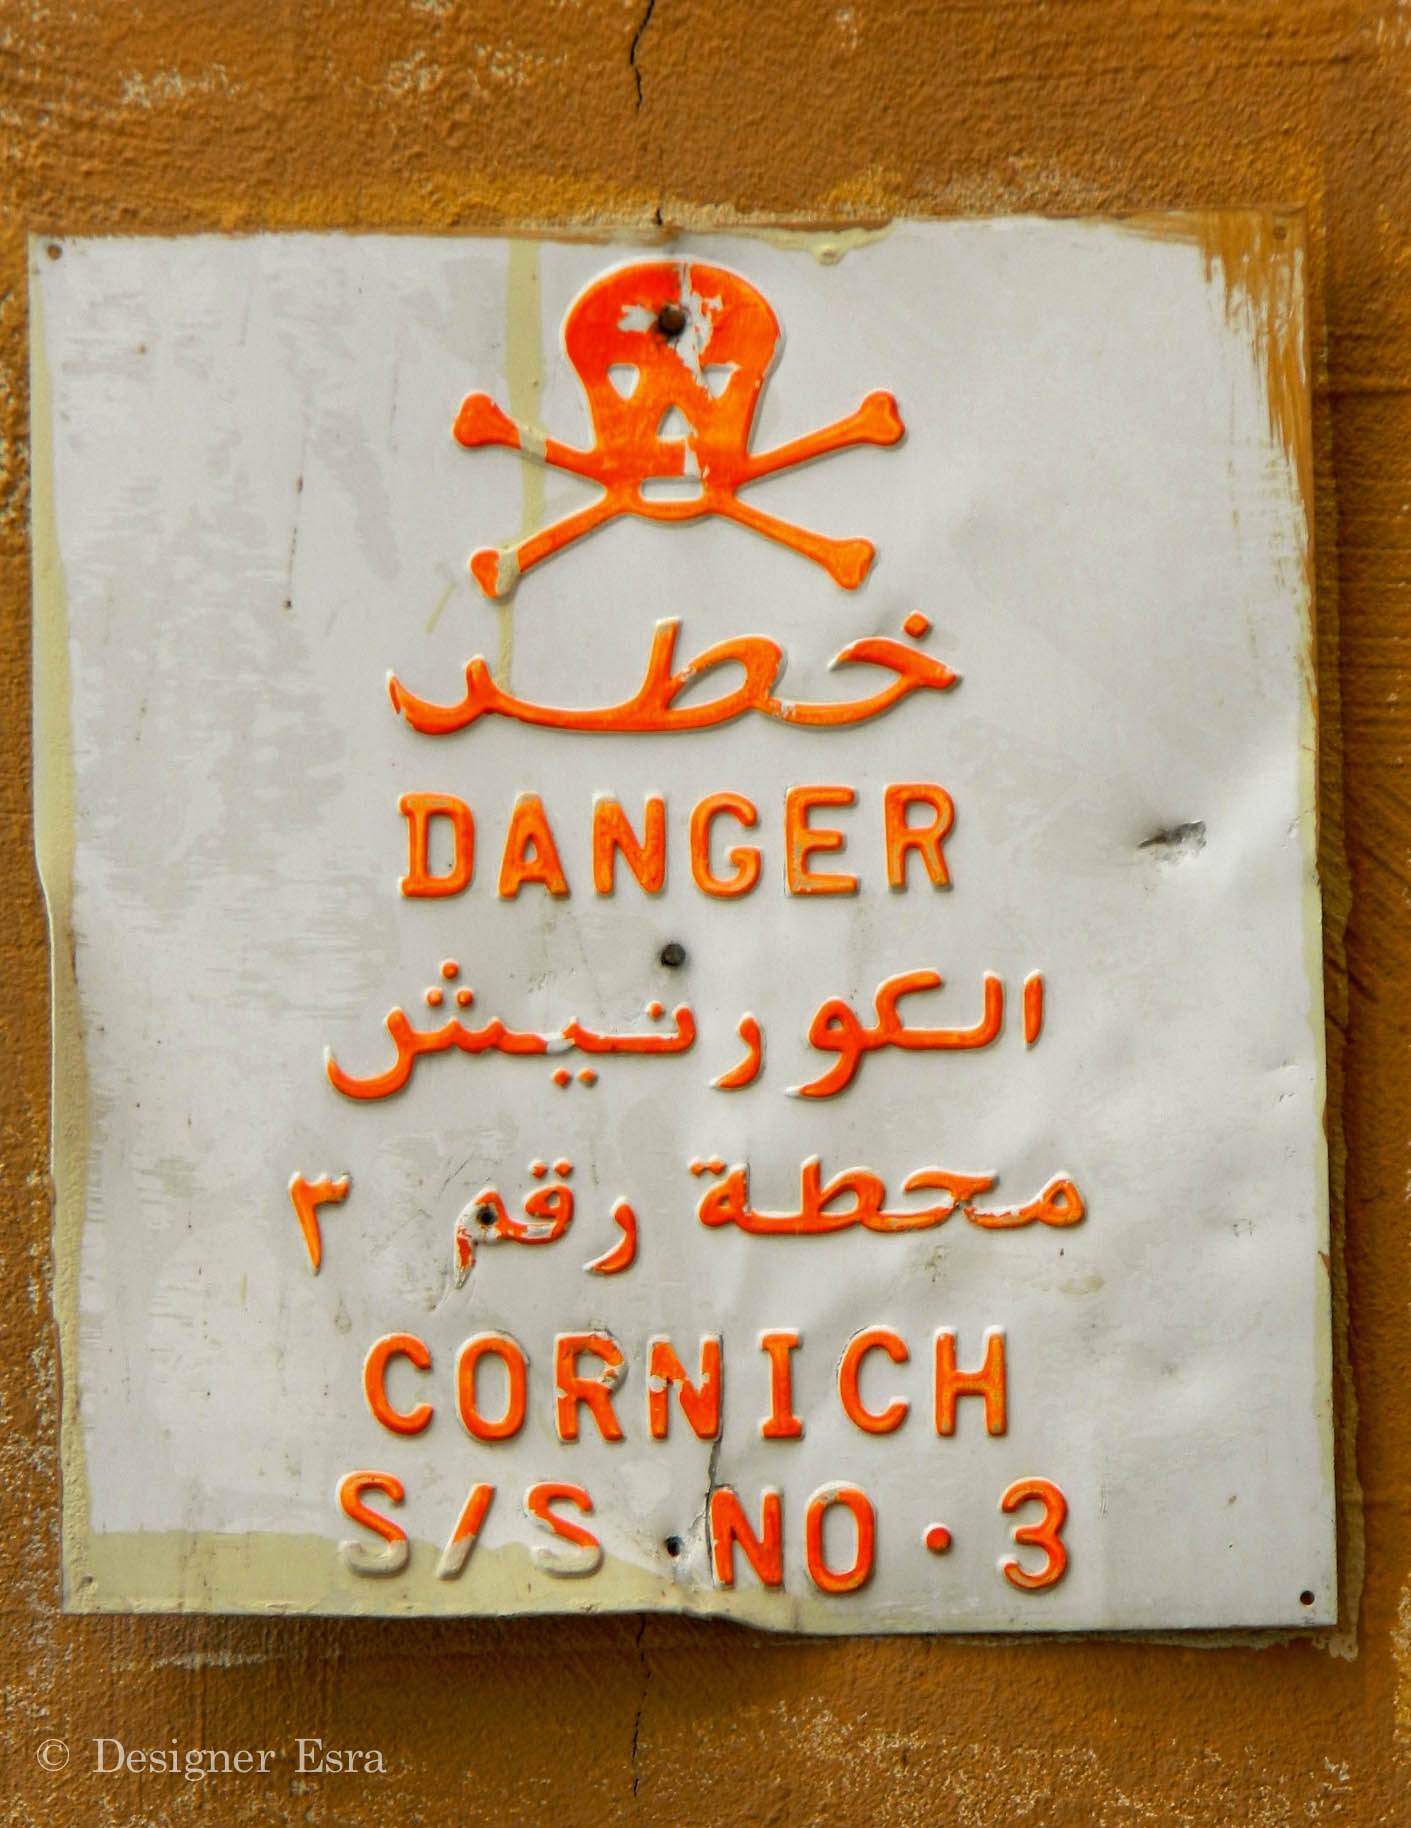 Danger in Arabic